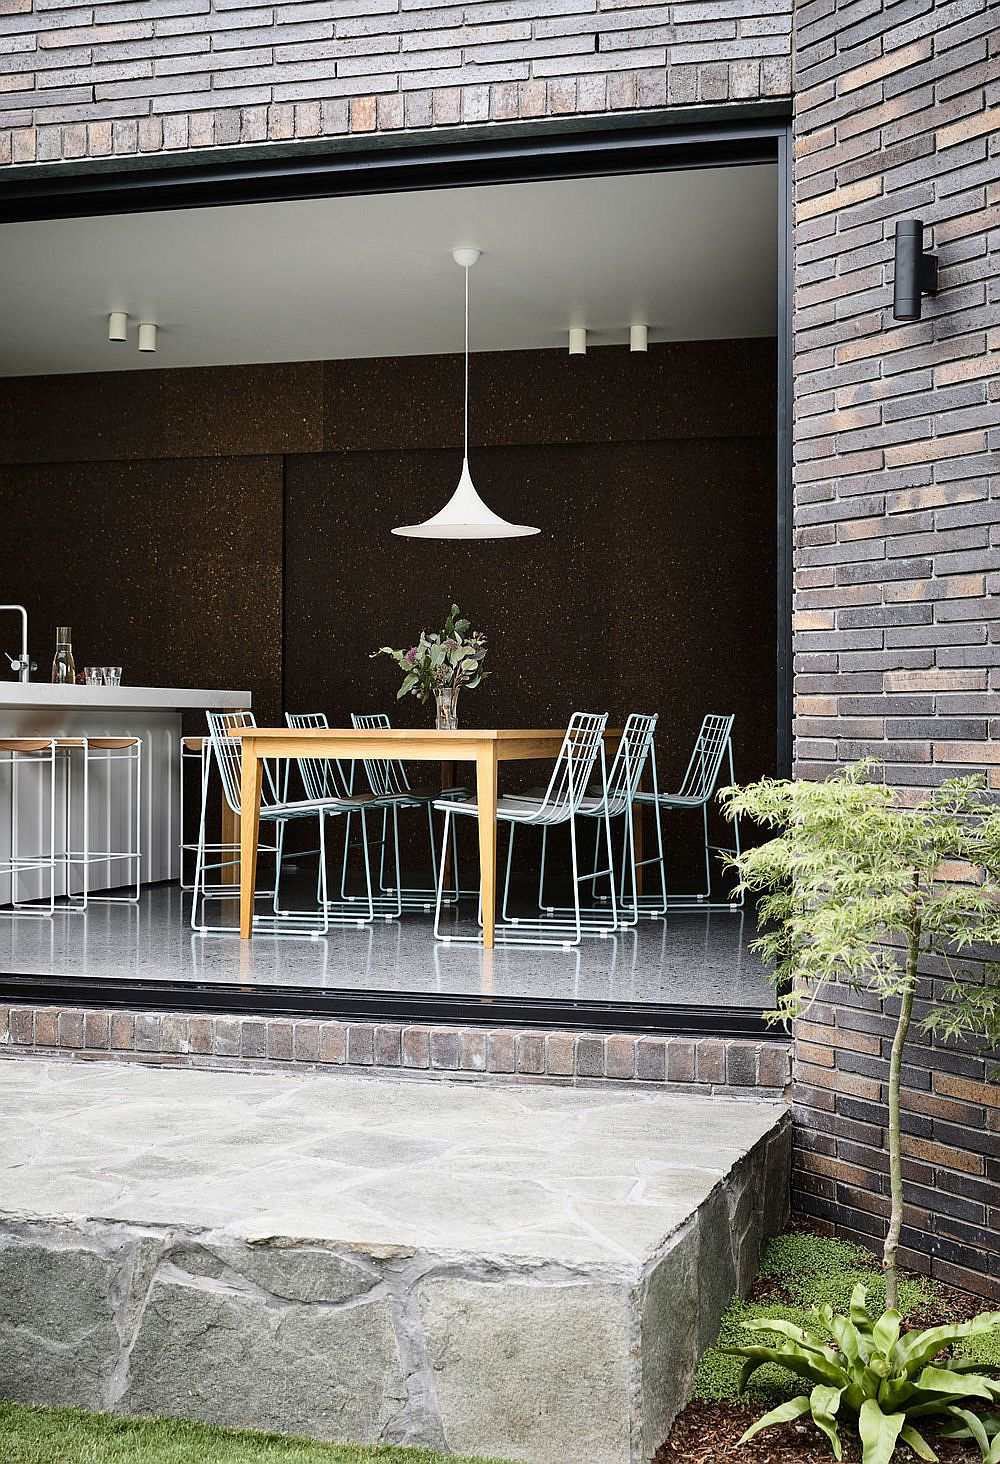 Brick-exterior-of-the-extension-allows-it-to-blend-in-with-the-original-home-22434